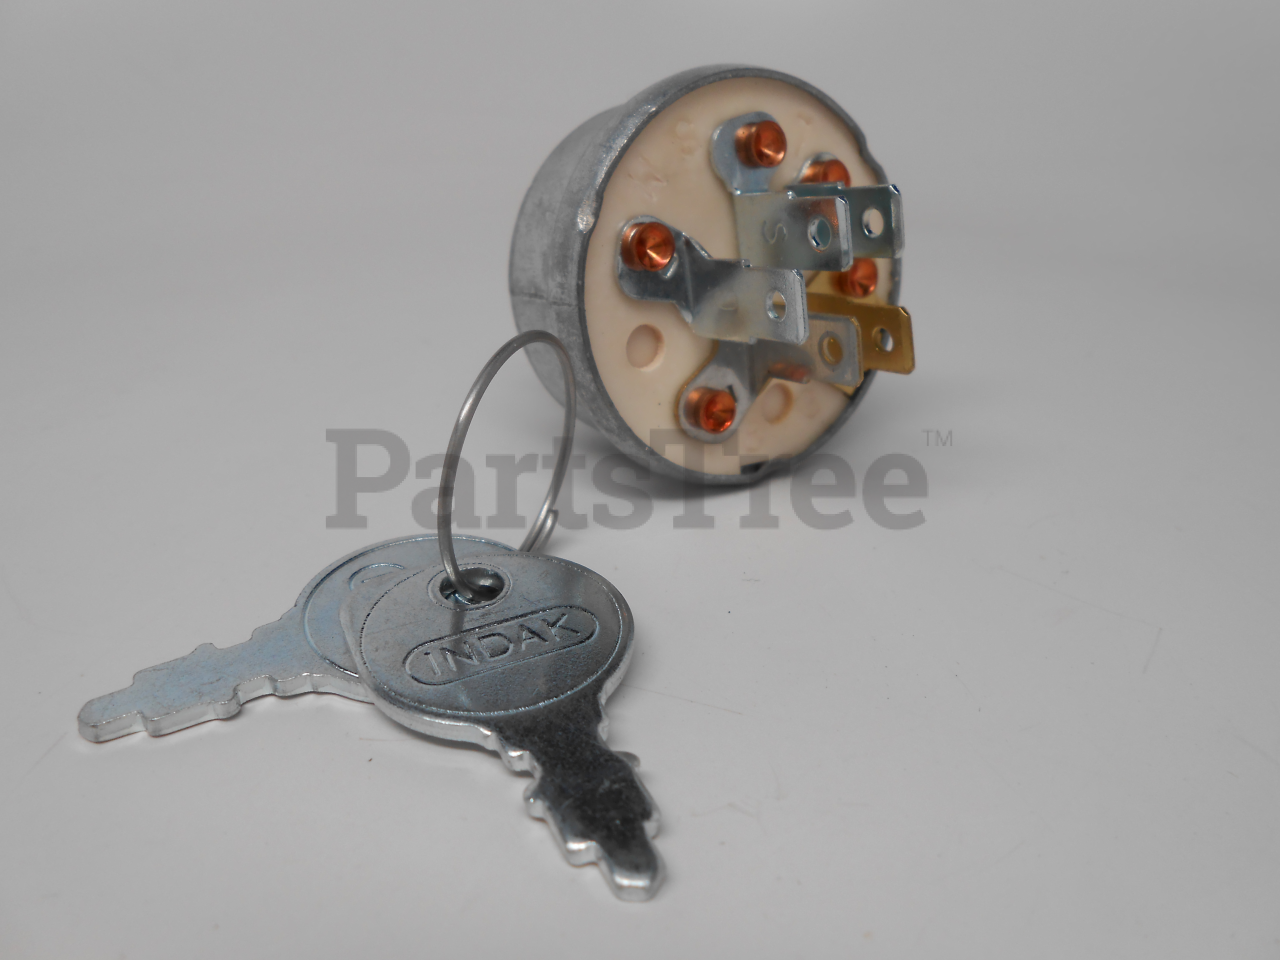 Mtd Garden Tractor Ignition Switch : Mtd part b switch ignition partstree